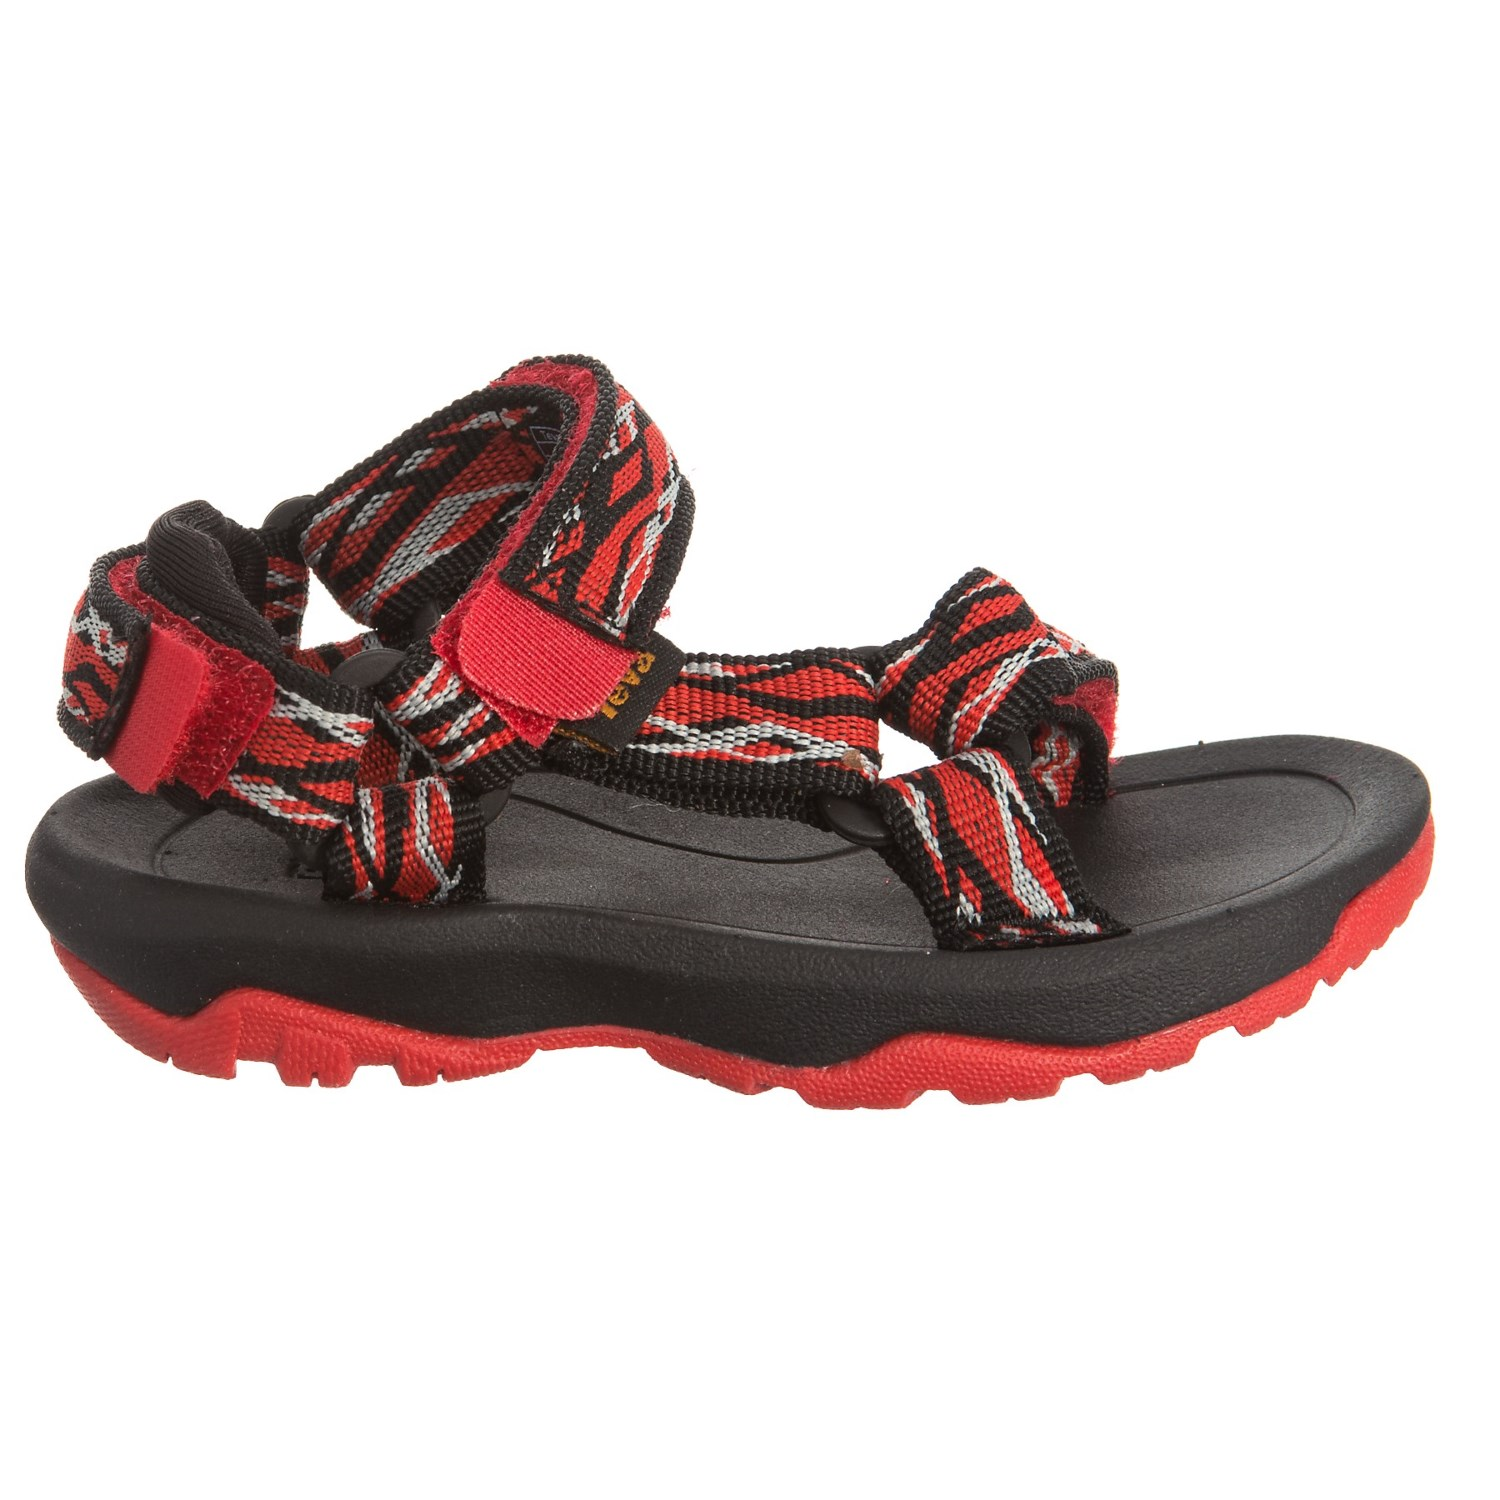 53ed425dedb377 Teva Hurricane XLT 2 Sport Sandals (For Boys) - Save 33%